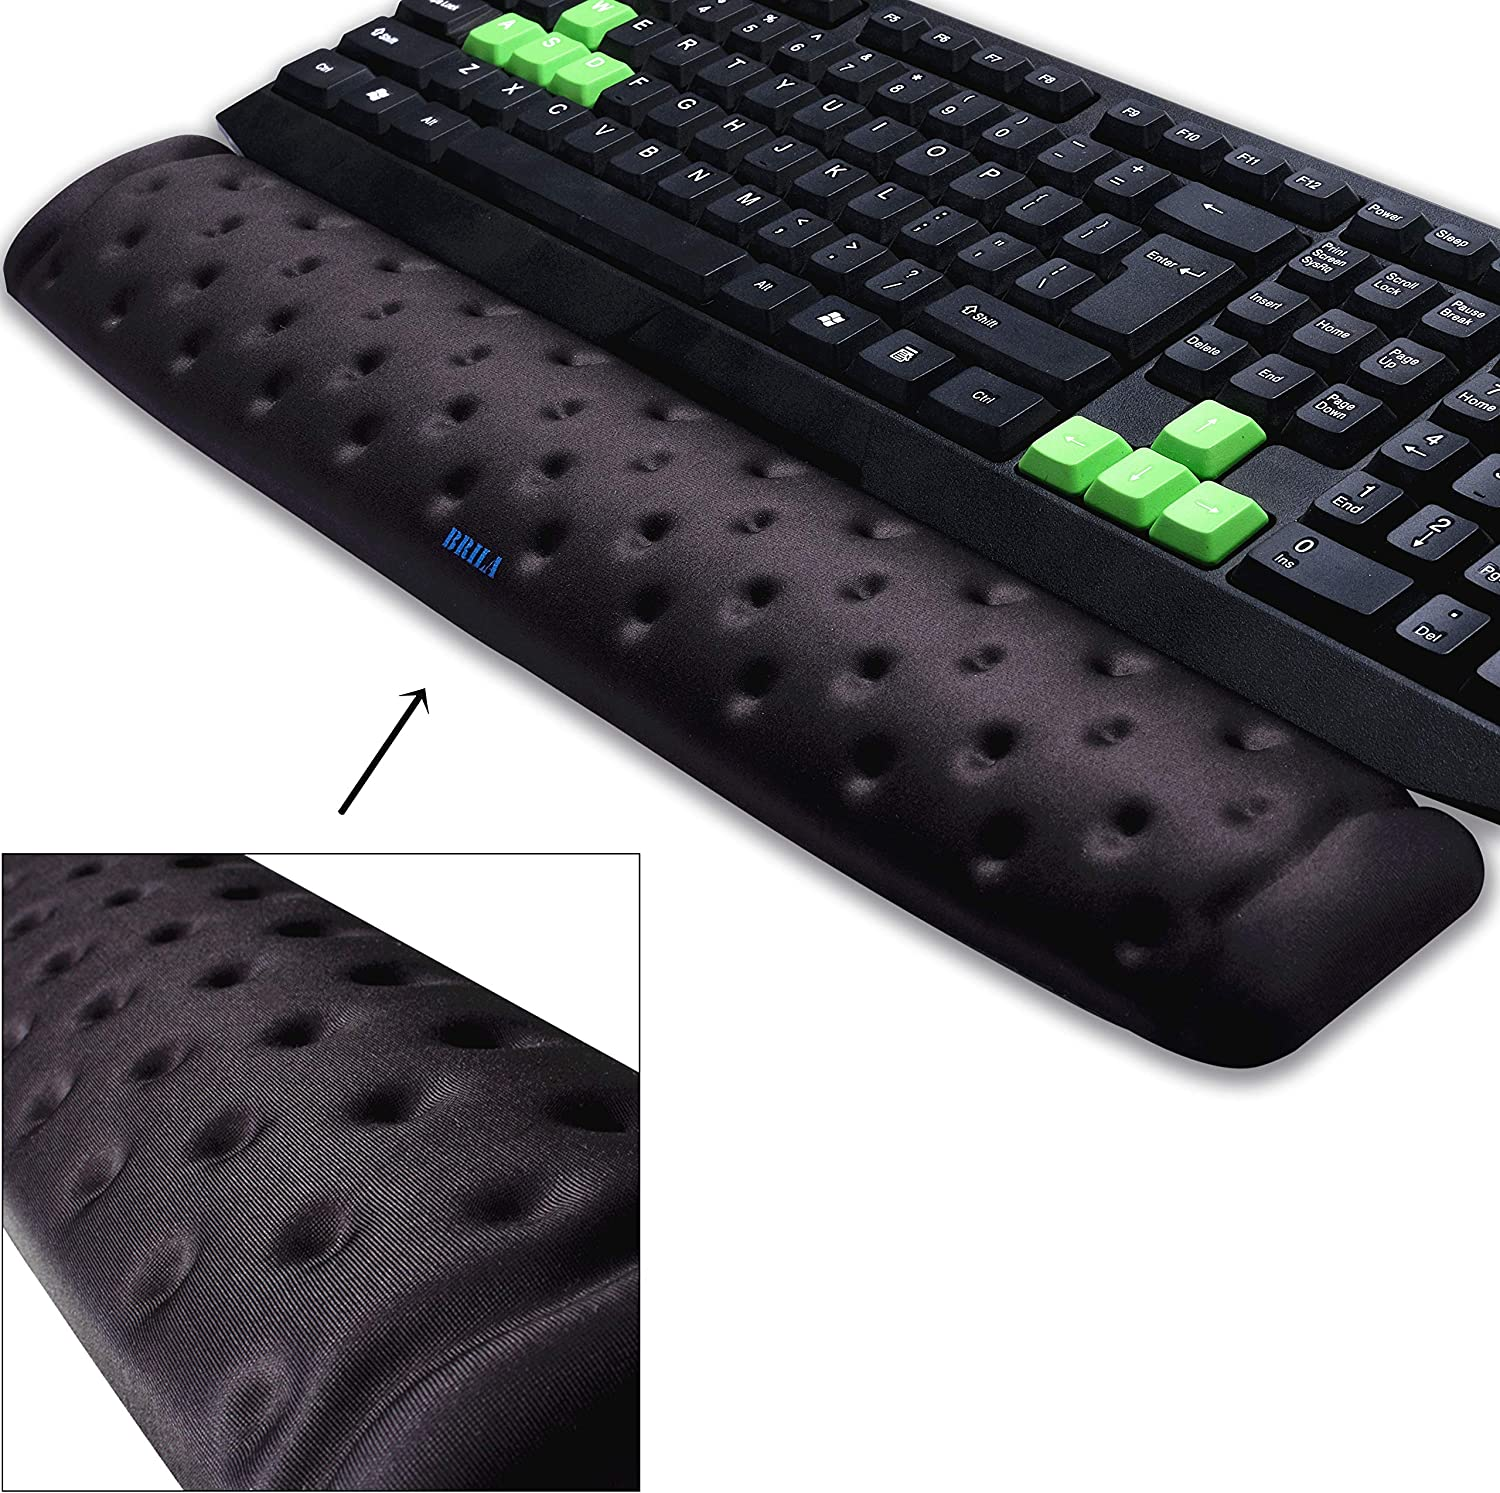 2 in 1 Keyboard Wrist Rest Pad Mouse Gel Memory Foam Gaming Mat For Computer Lap